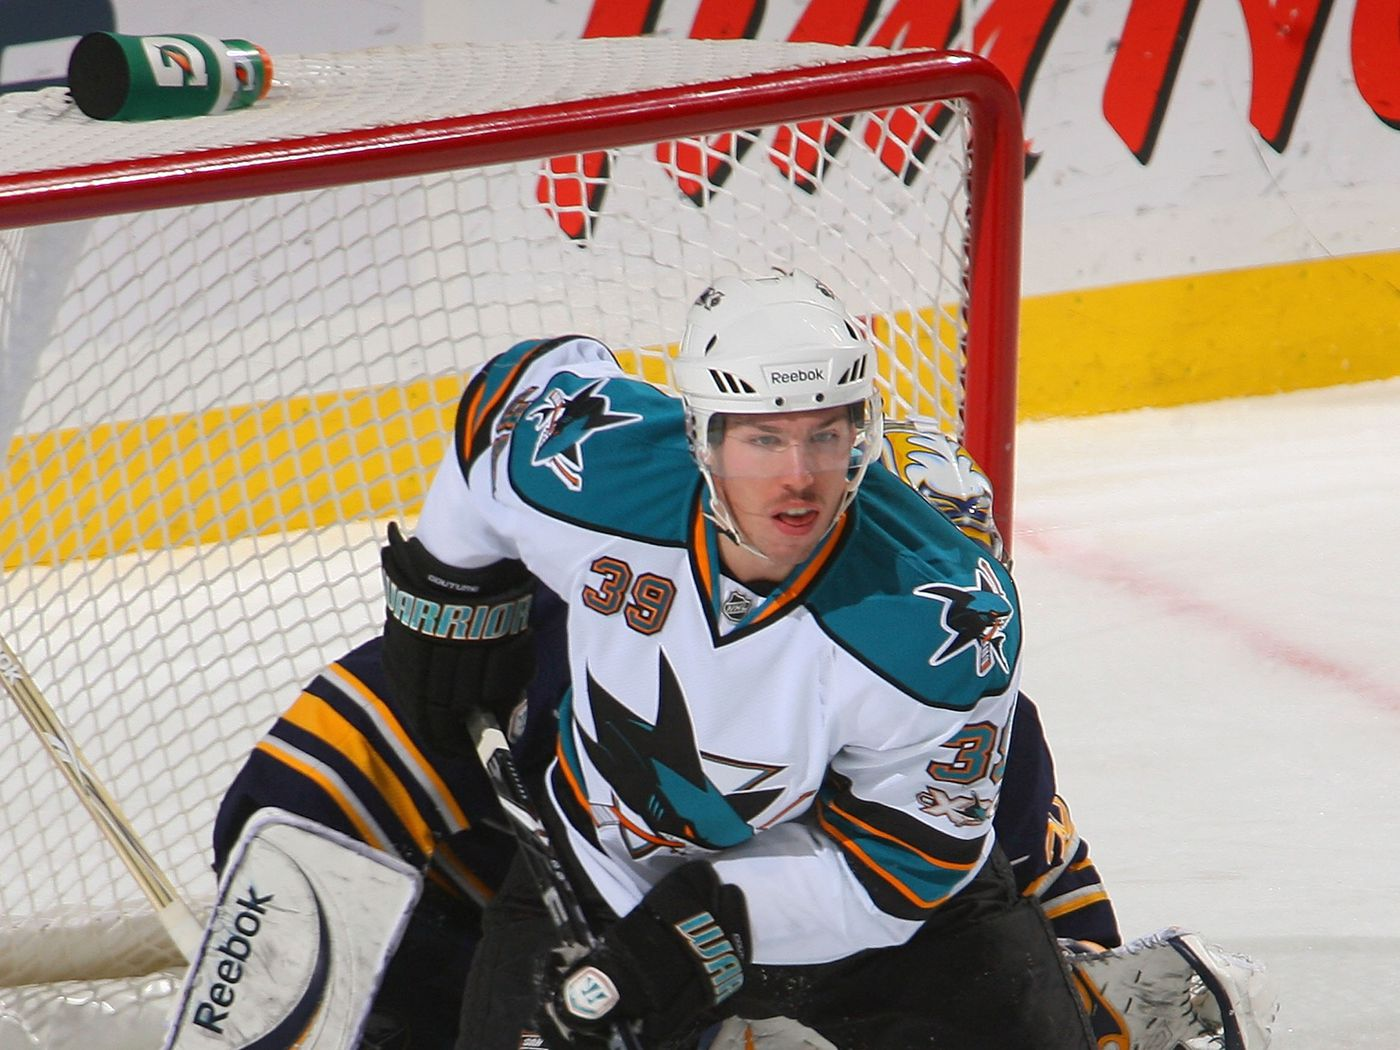 huge discount 3efc1 4a9de The Daily Chum: Logan Couture and the Buffalo Bills: A love ...